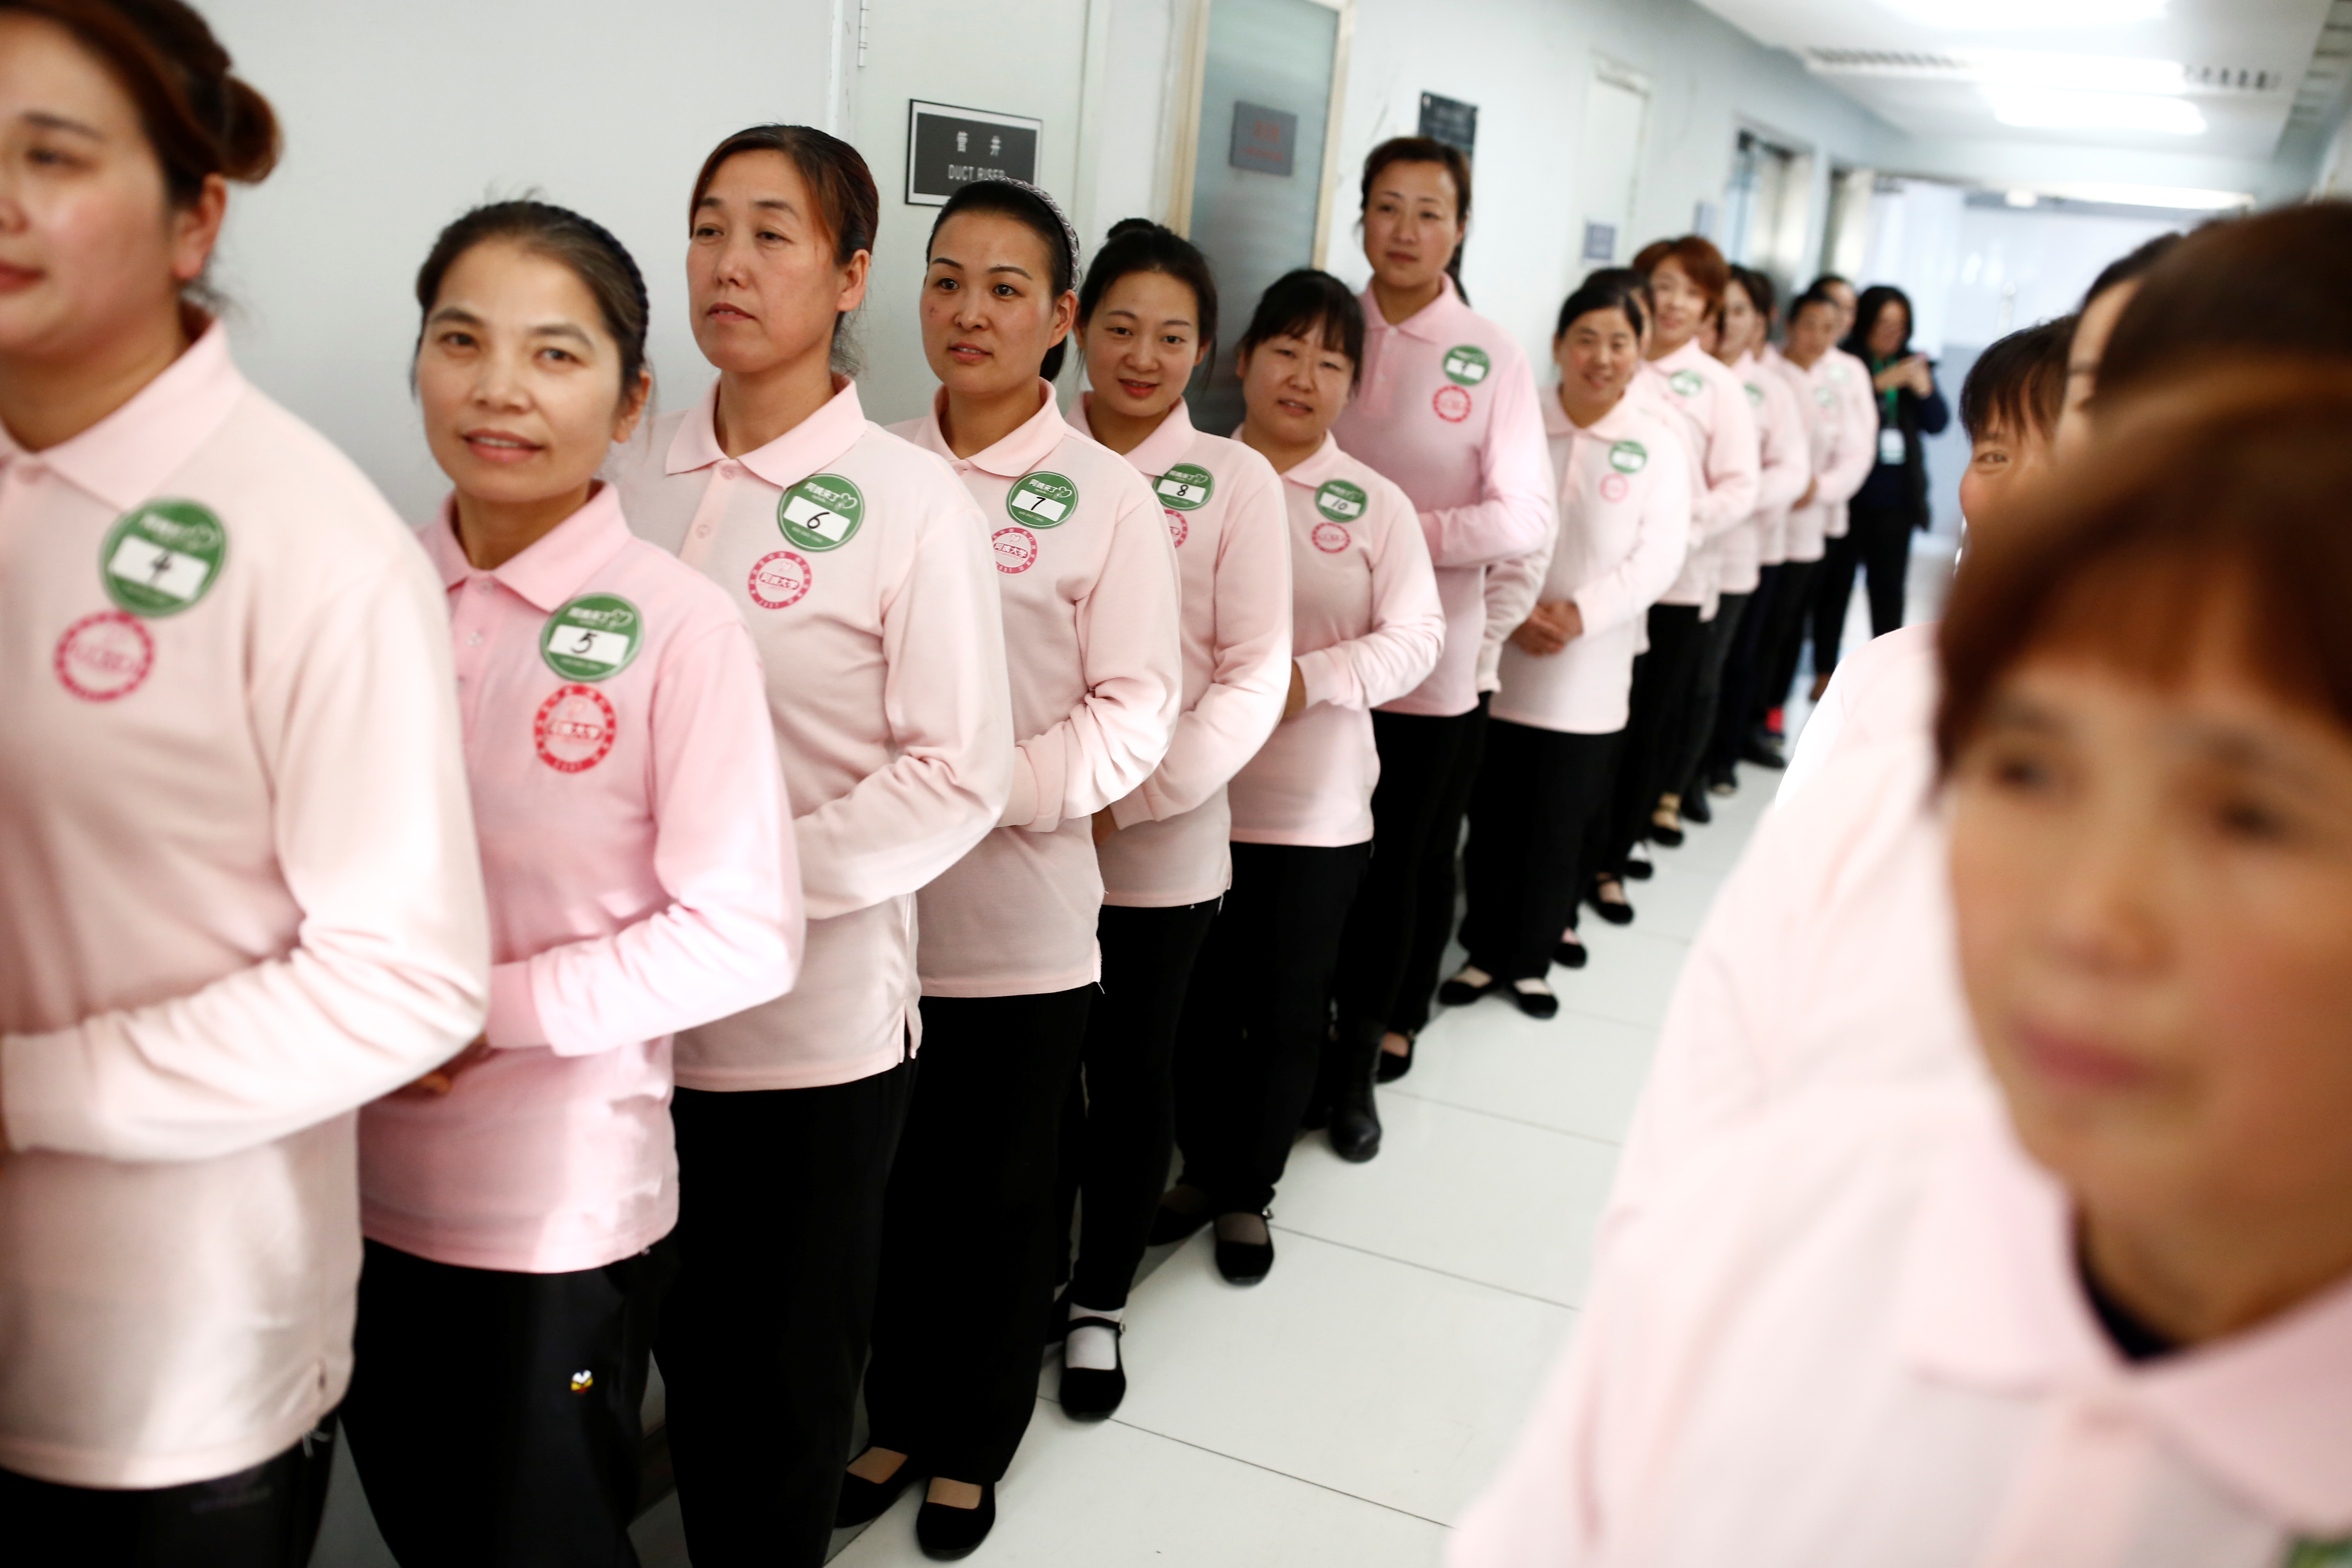 FILE - Graduates of Ayi University, a training program for domestic helpers, line up to meet potential employers in Beijing, China, Dec. 11, 2018.